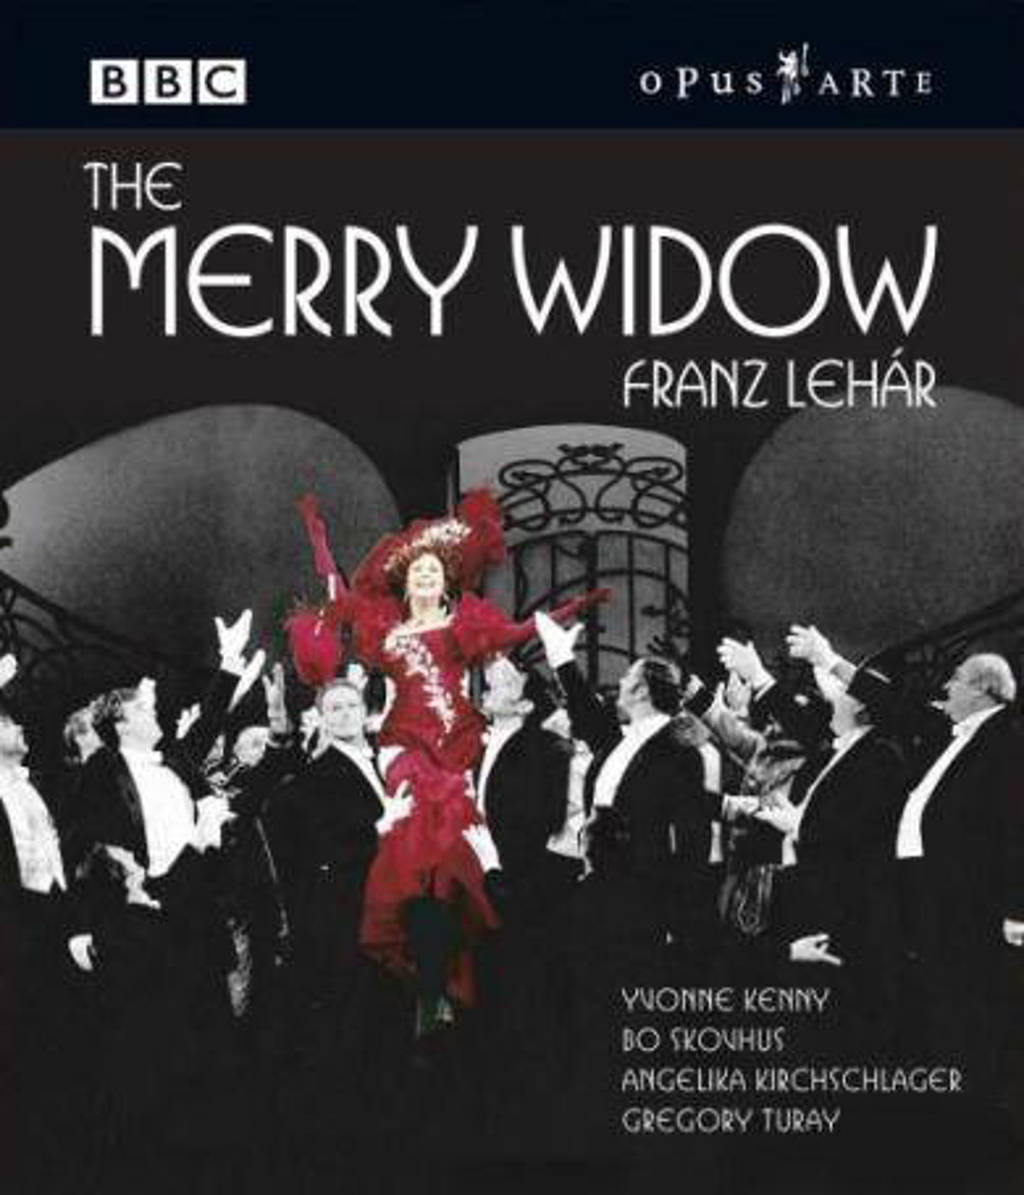 Kenny/Skovhus/Kirchschlager/Turay - The Merry Widow (Blu-ray)